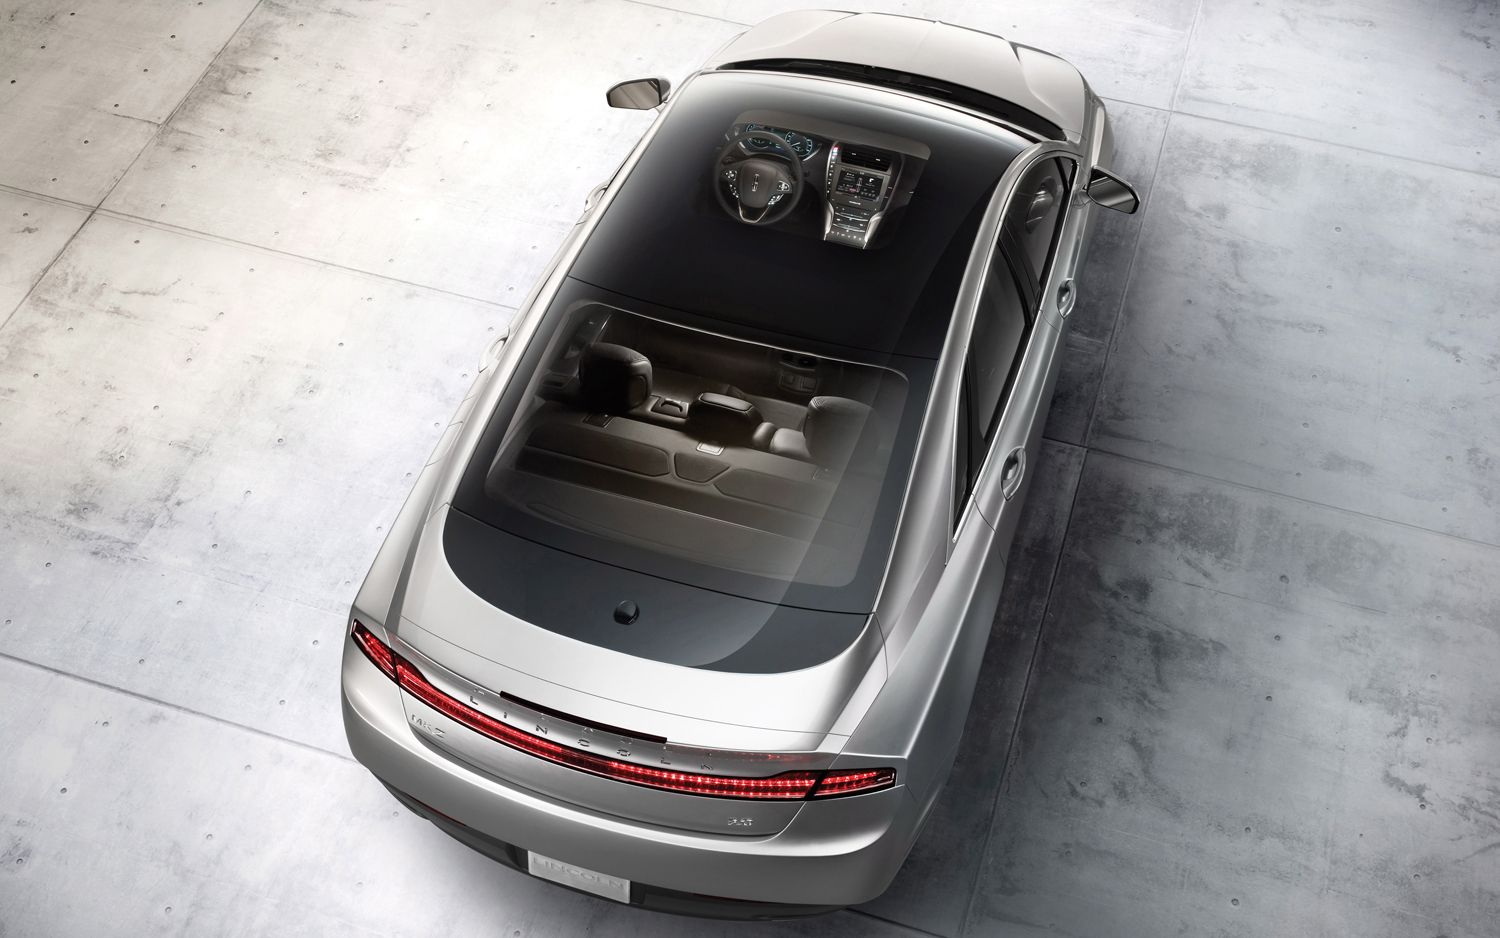 2013 Lincoln MKZ Top View11